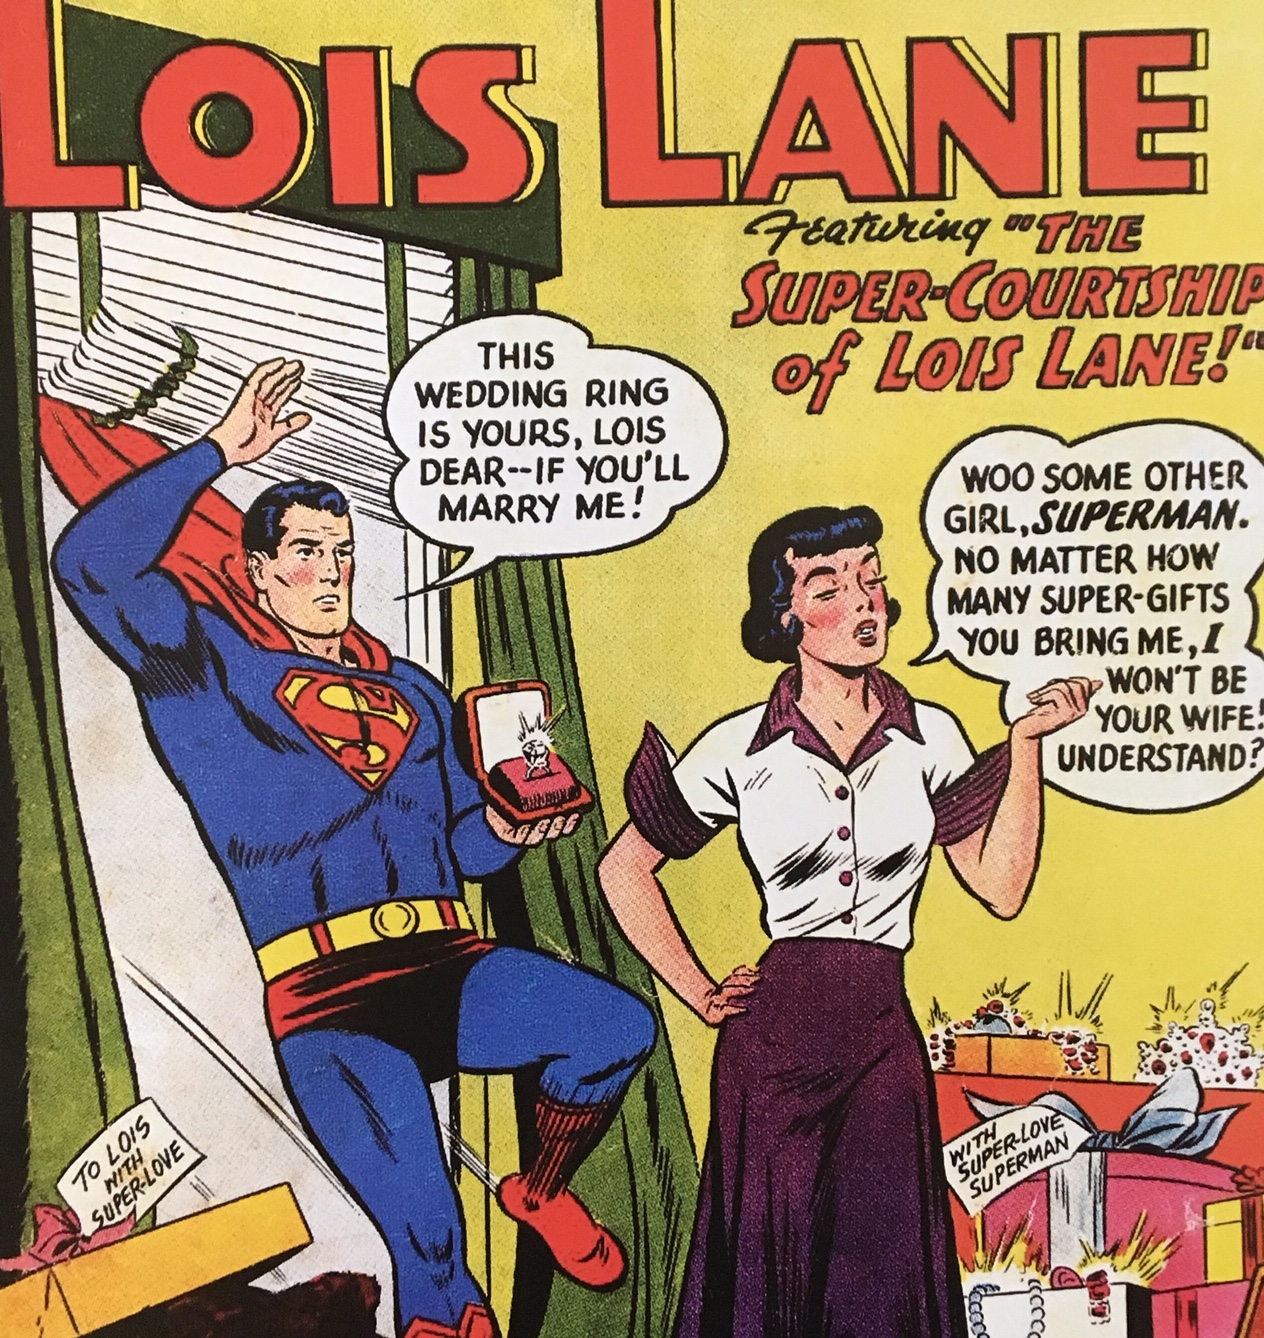 Trouble in Paradise, Superman?